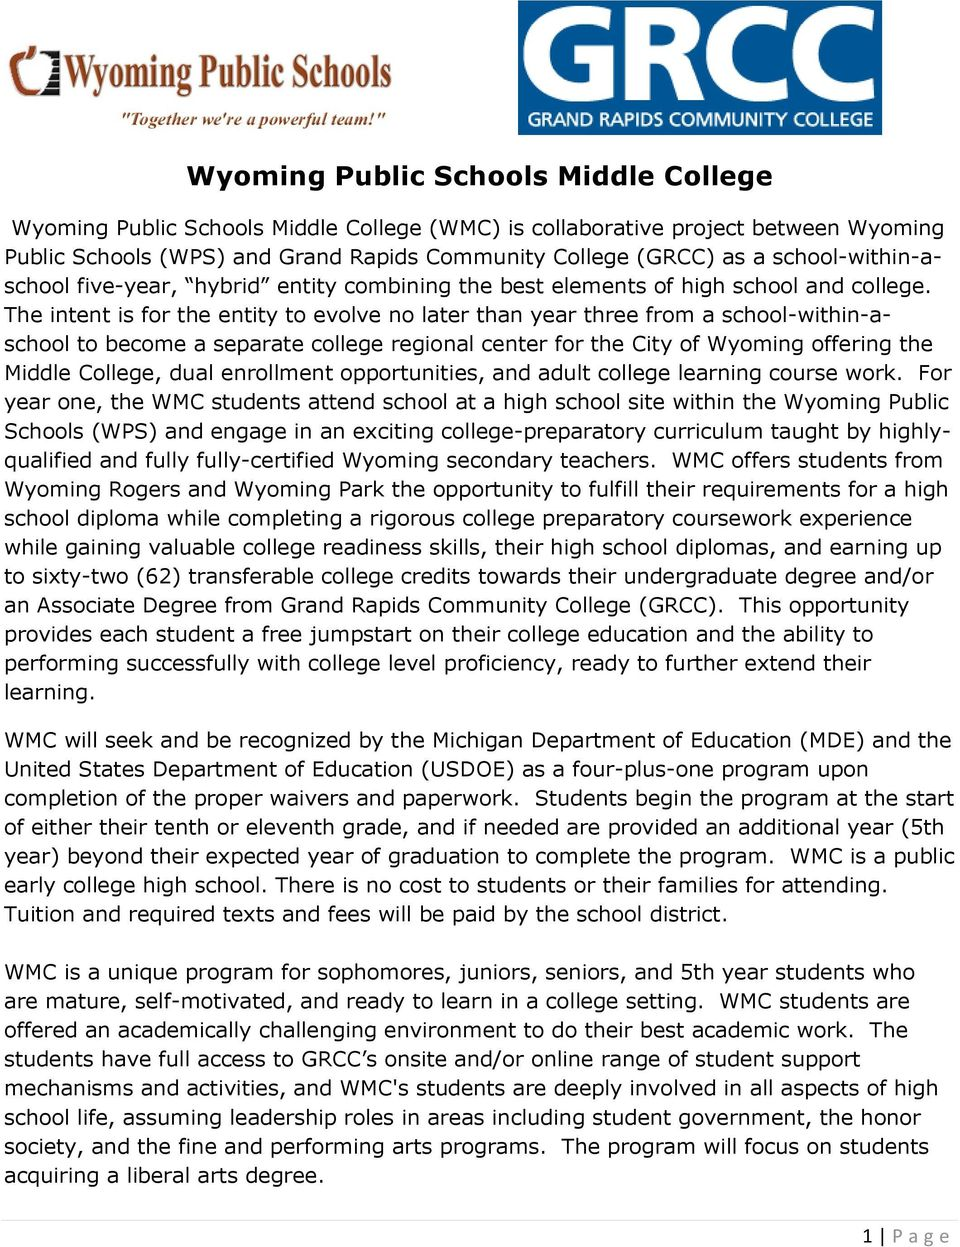 The intent is for the entity to evolve no later than year three from a school-within-aschool to become a separate college regional center for the City of Wyoming offering the Middle College, dual